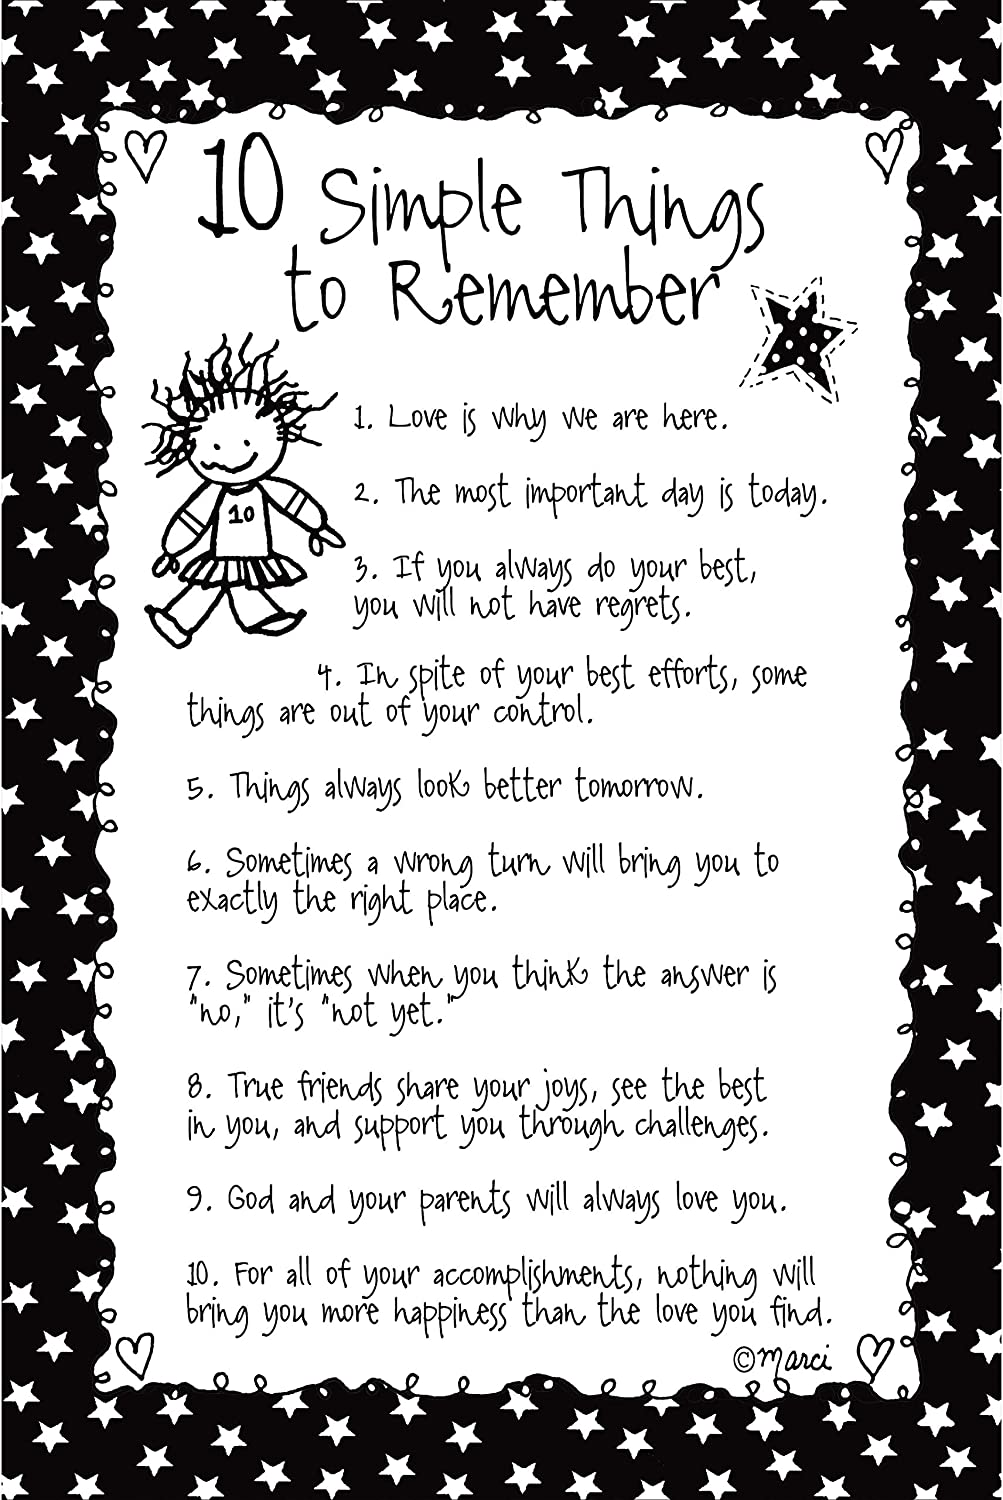 10 Simple Things to Remember Wood Plaque - Children of The Inner Light by Marci | Elegant Vertical Frame Wall Art & Tabletop Decoration | Easel & Hanging Hook | Measures 6 inches x 9 inches